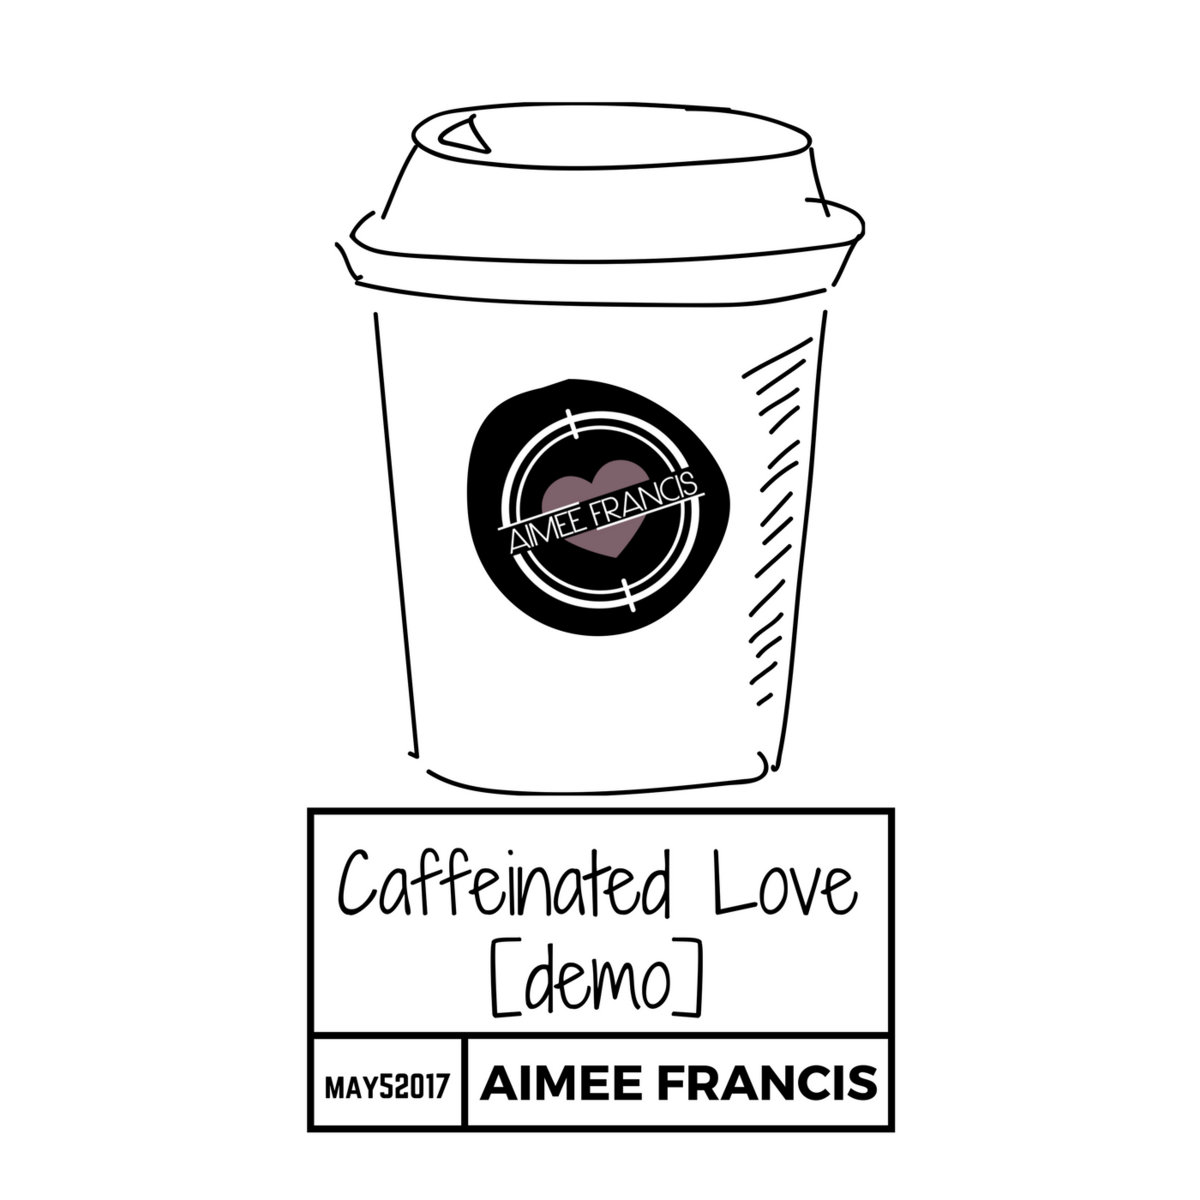 Caffeinated Love by Aimee Francis